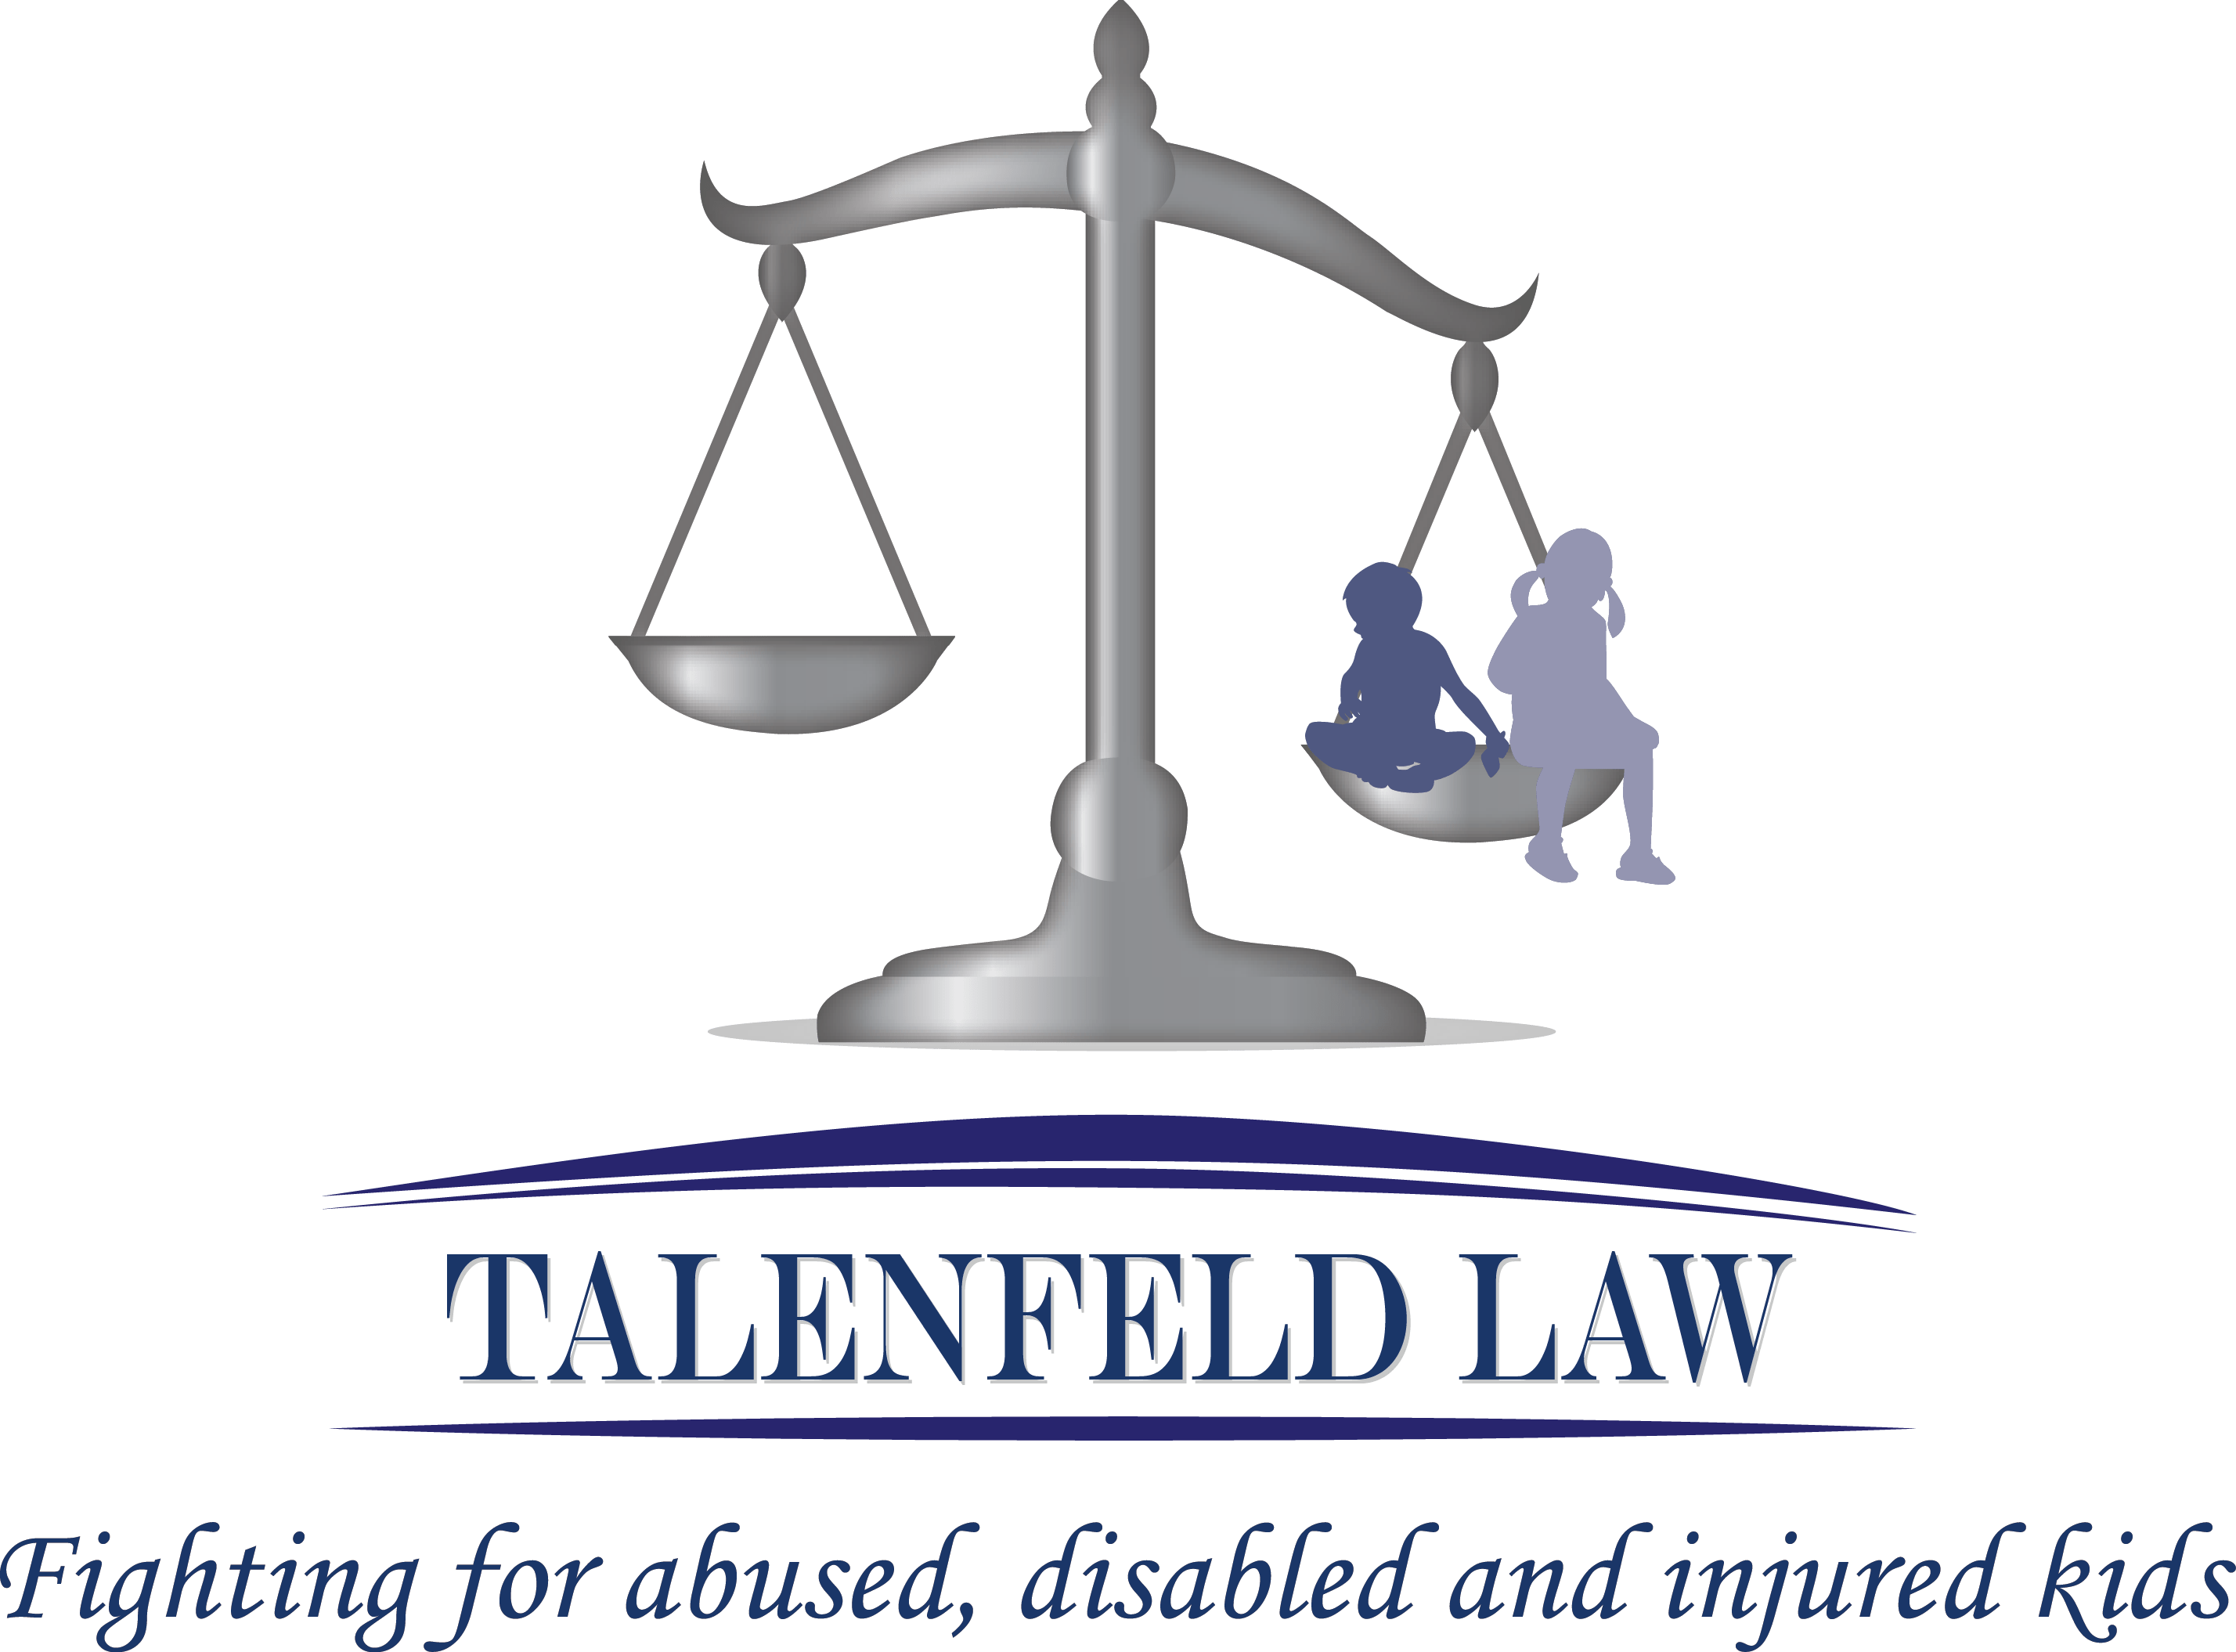 Laws clipart legal aid. Thank you to our